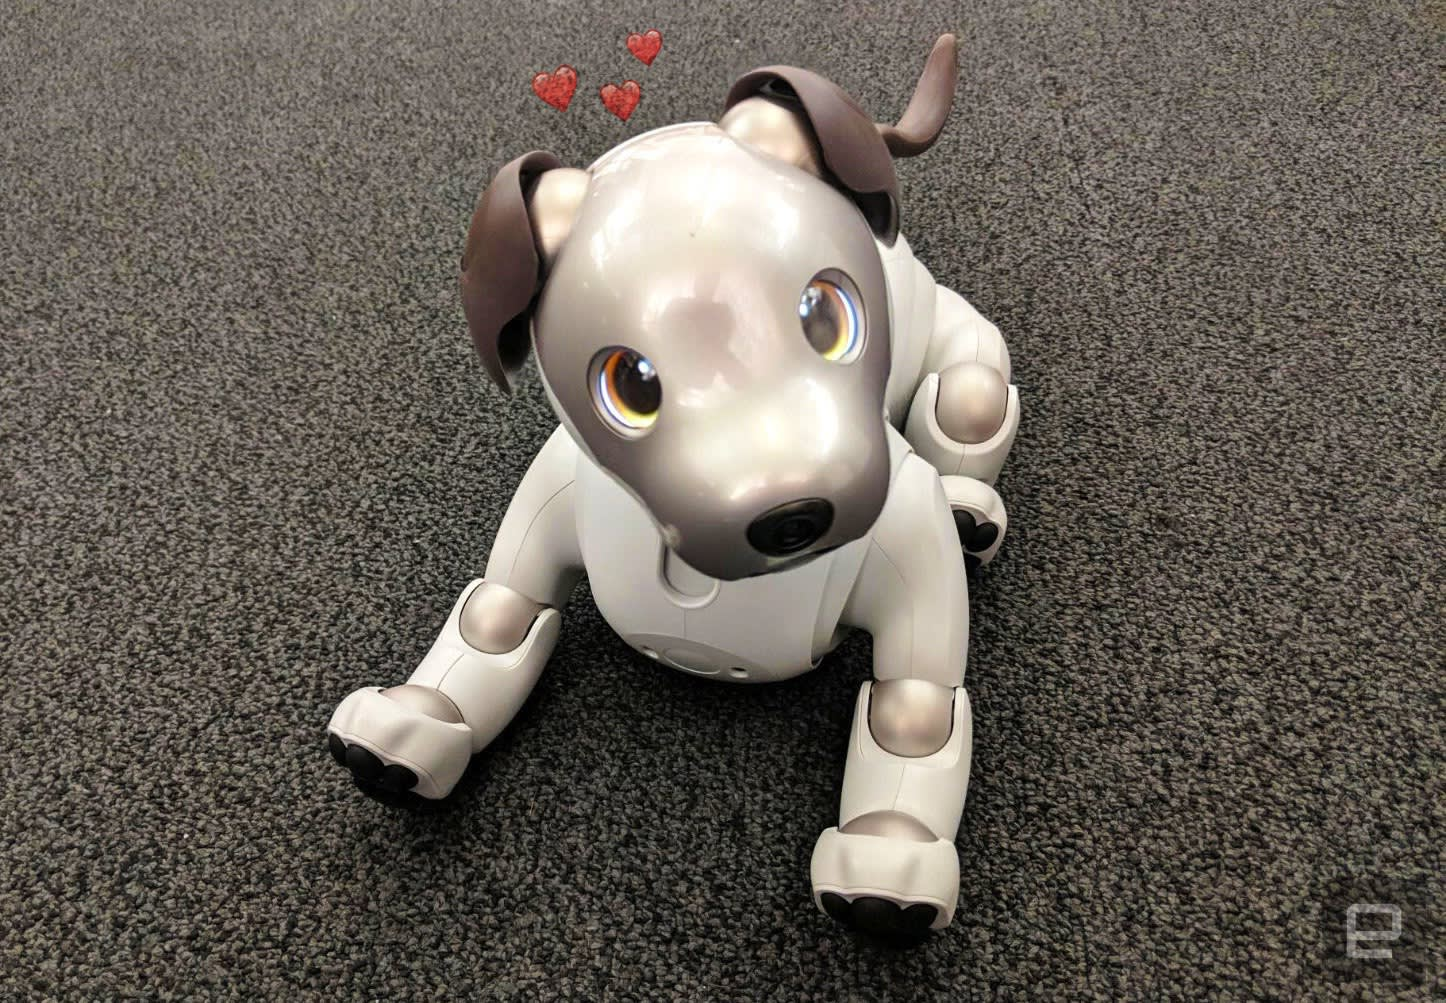 Sony Aibo review: Just get a puppy